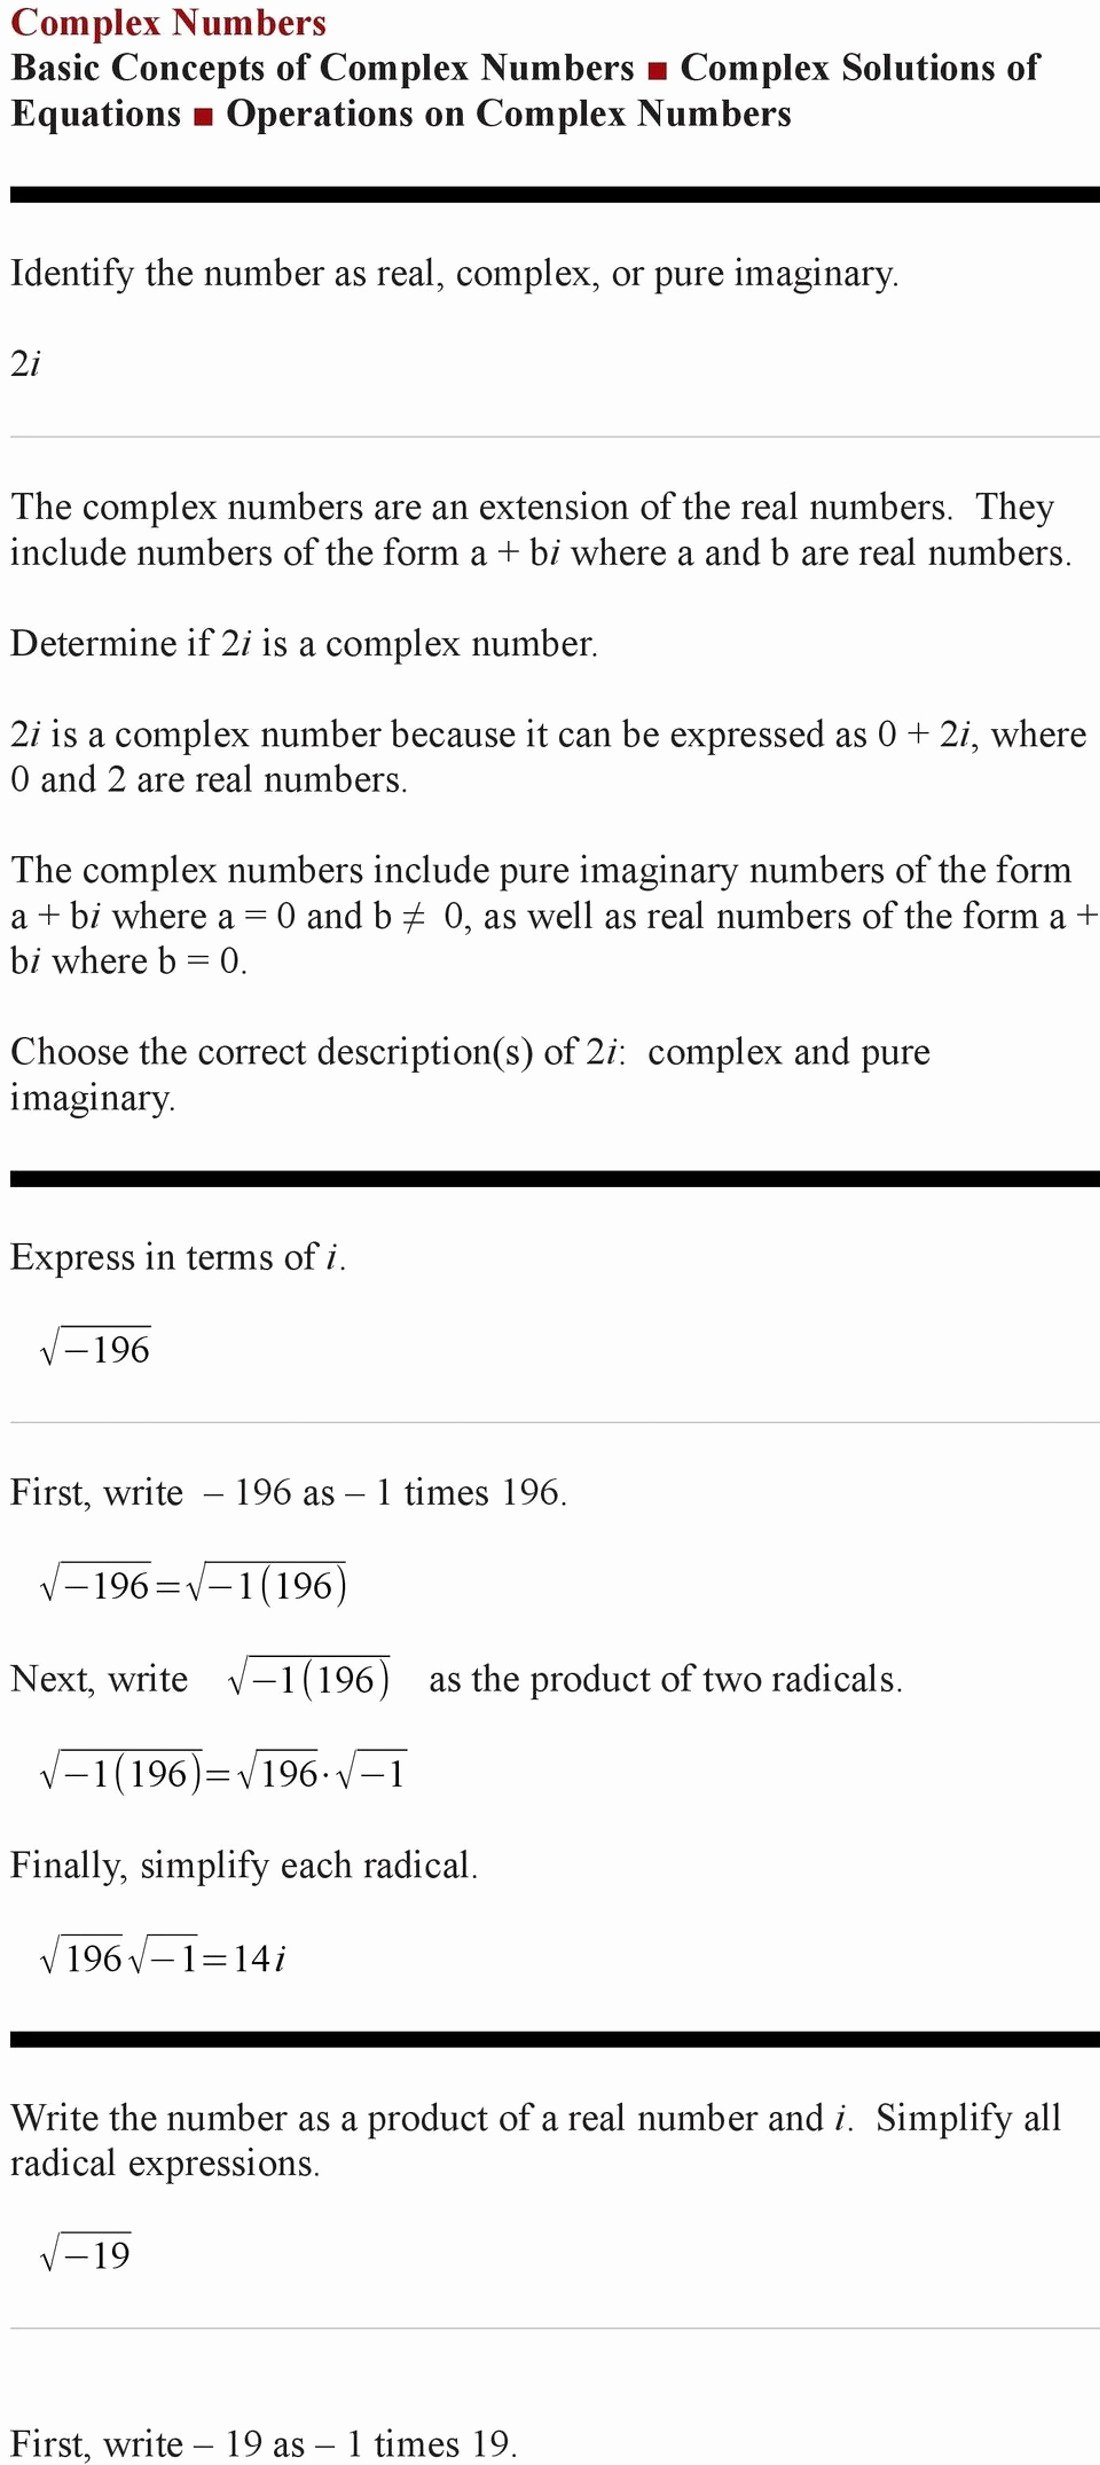 Complex Numbers Worksheet Pdf Luxury Polar form Plex Numbers Worksheet